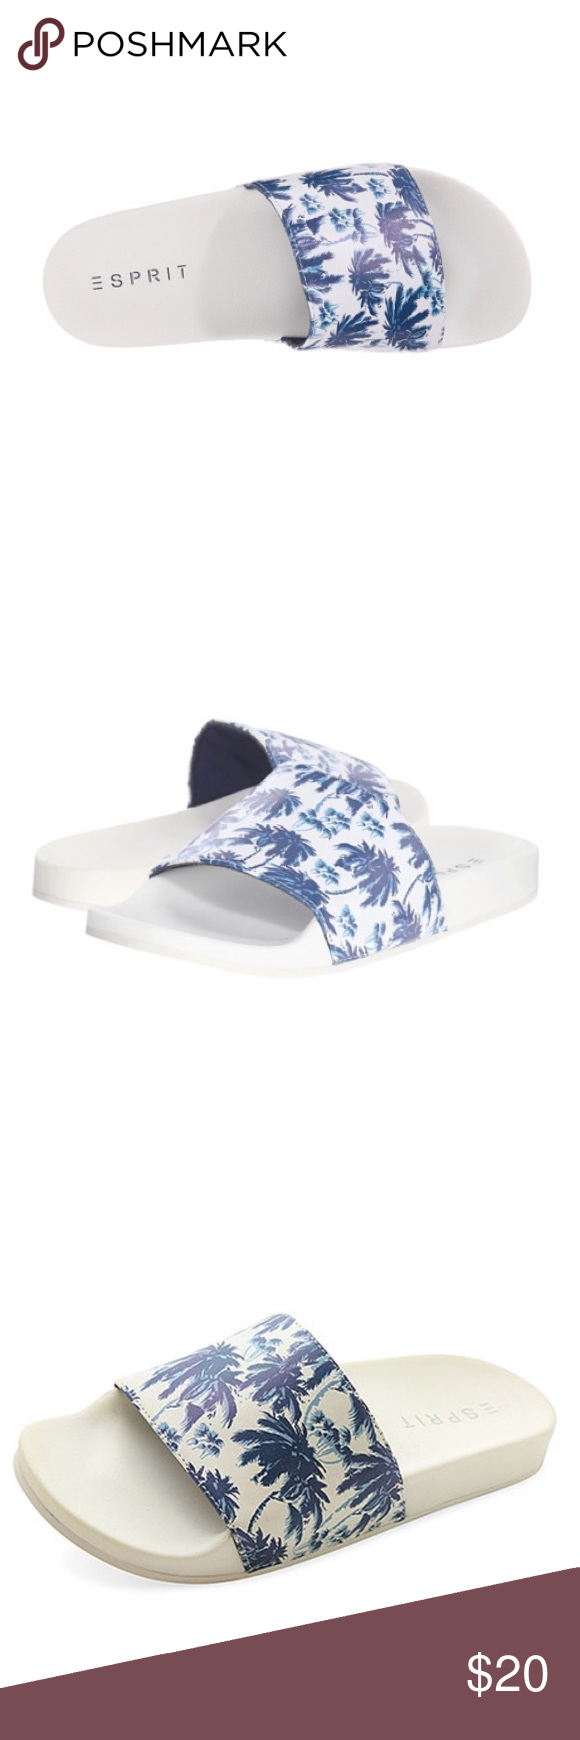 Esprit palm slide Enliven your ensembles with this slide's charming print. The slip-on design ,Cushioned footbed, new never been worn , size 7. These are super comfortable I have one myself & I love it .  There is a yellowish line around the sole which I noticed myself after purchasing , it's not really noticeable when u wear them u have to be super picky like me to notice that Esprit Shoes Sandals